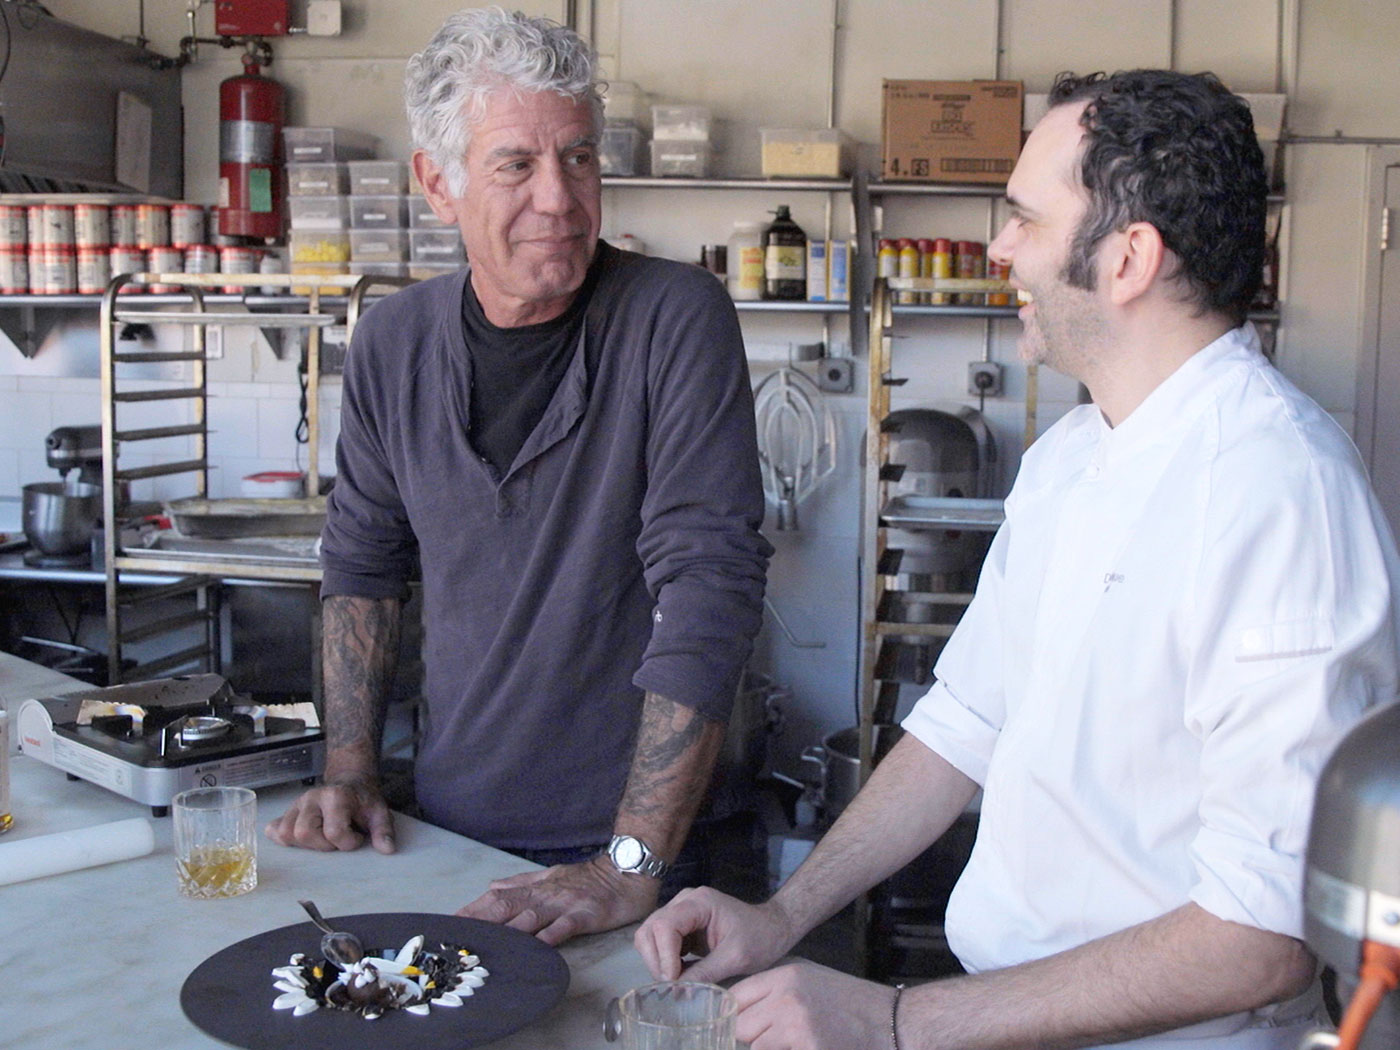 Exclusive: Watch Anthony Bourdain Learn How to Make Pastry From Dominique Ansel